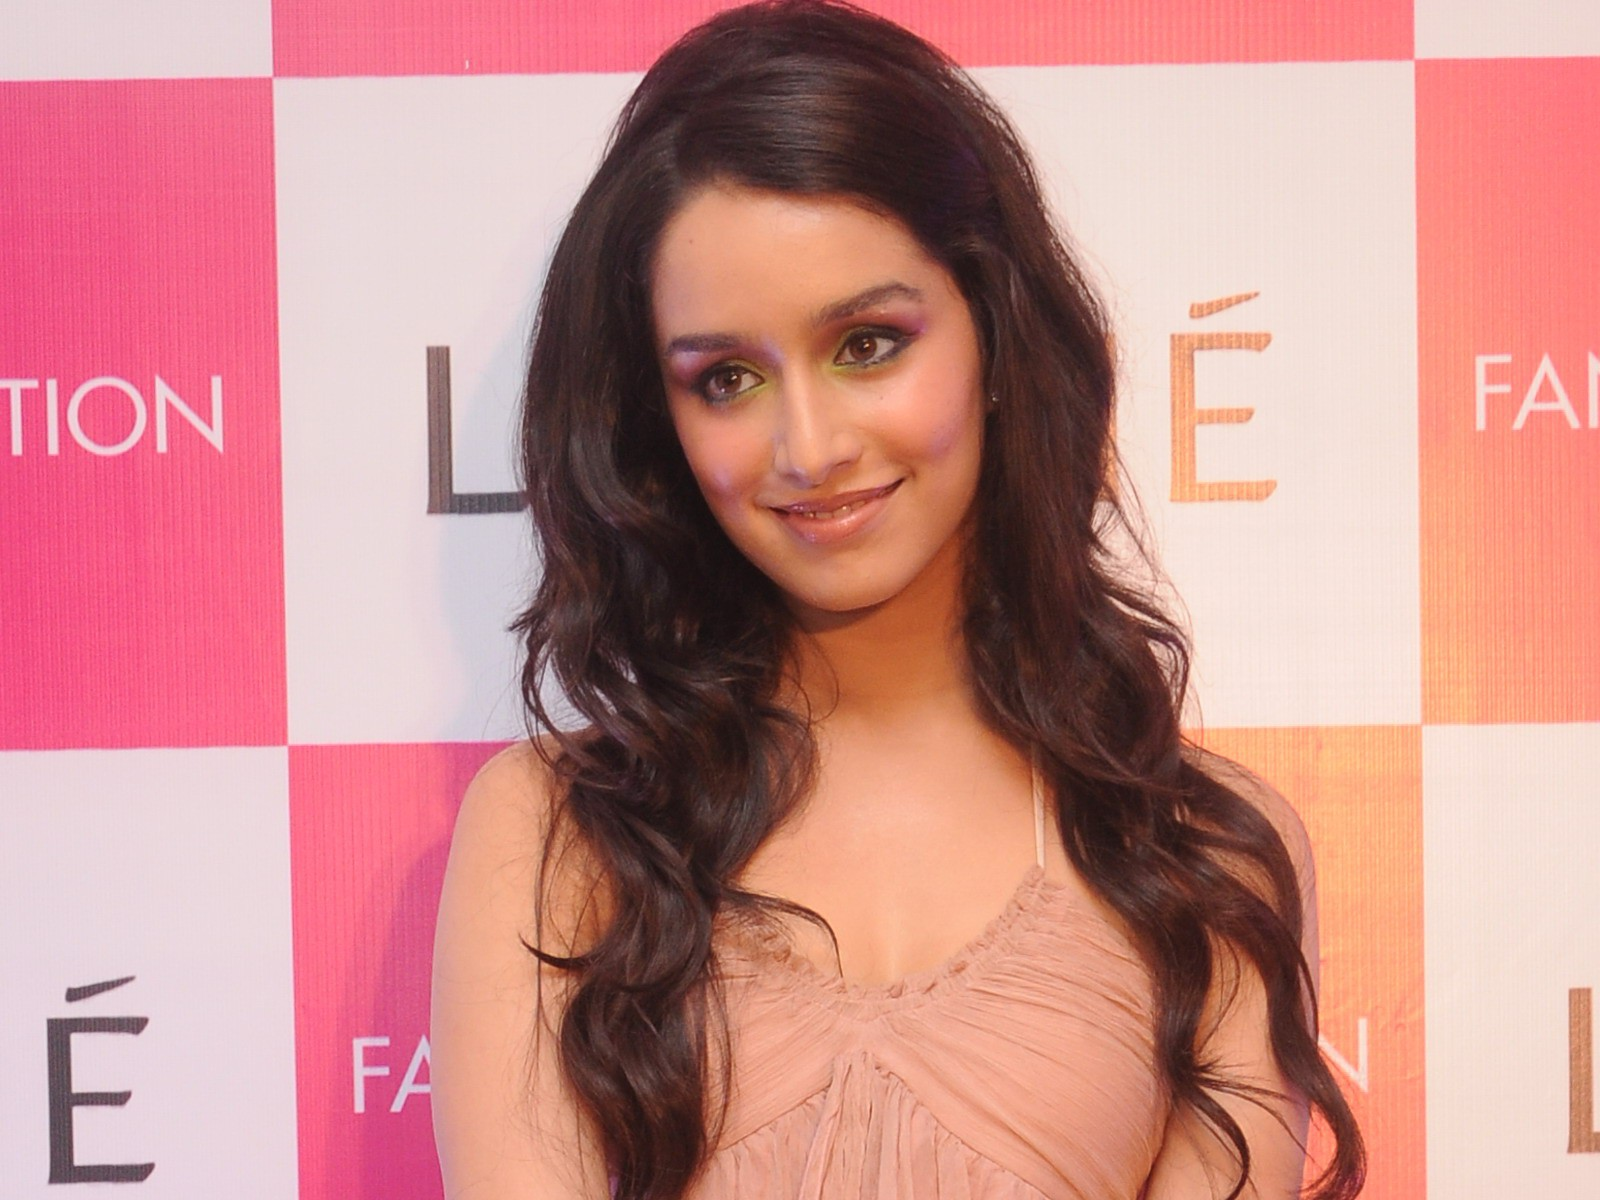 Shraddha Kapoor Photo Gallery: Hot Photos, Gallery and